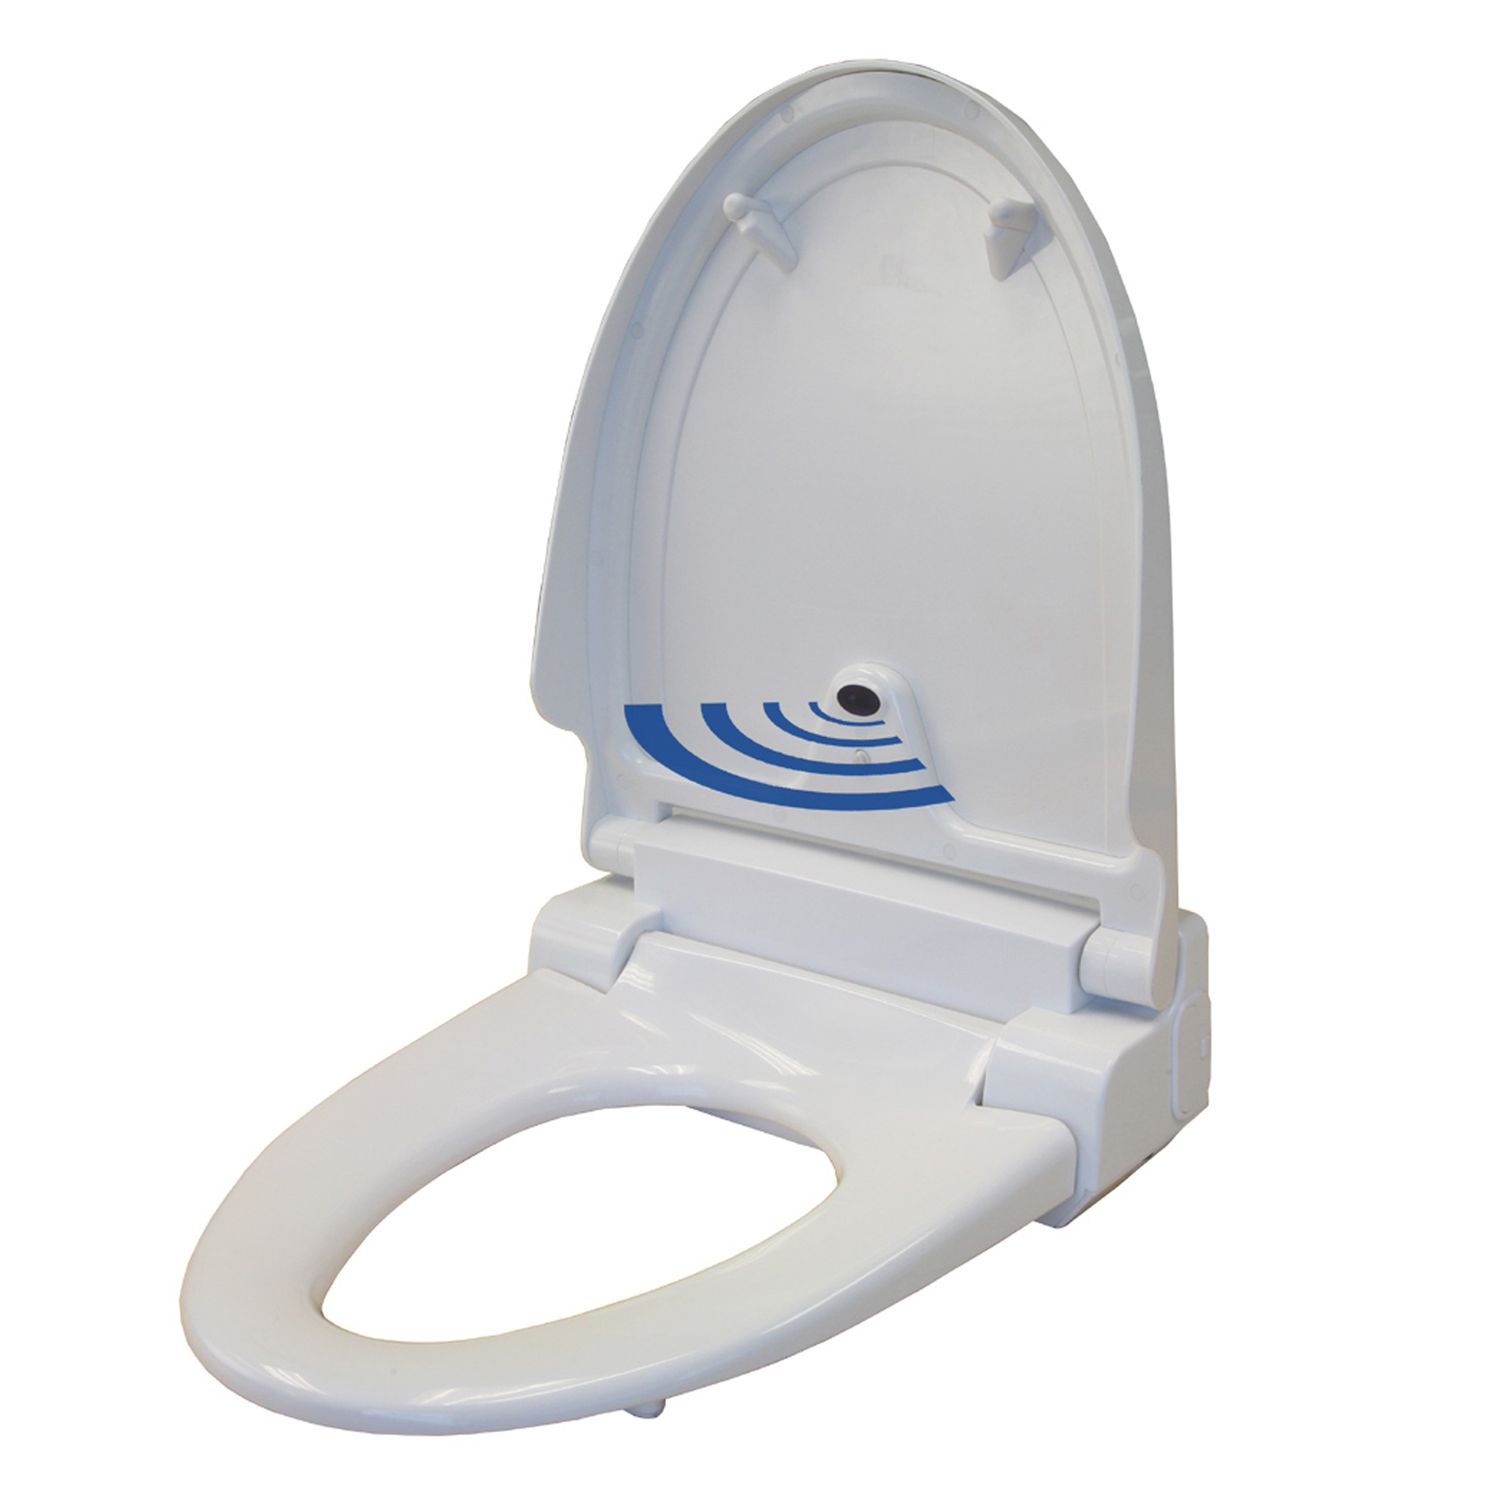 ITouchless Elongated Touch Free Sensor Controlled Automatic Toilet Seat